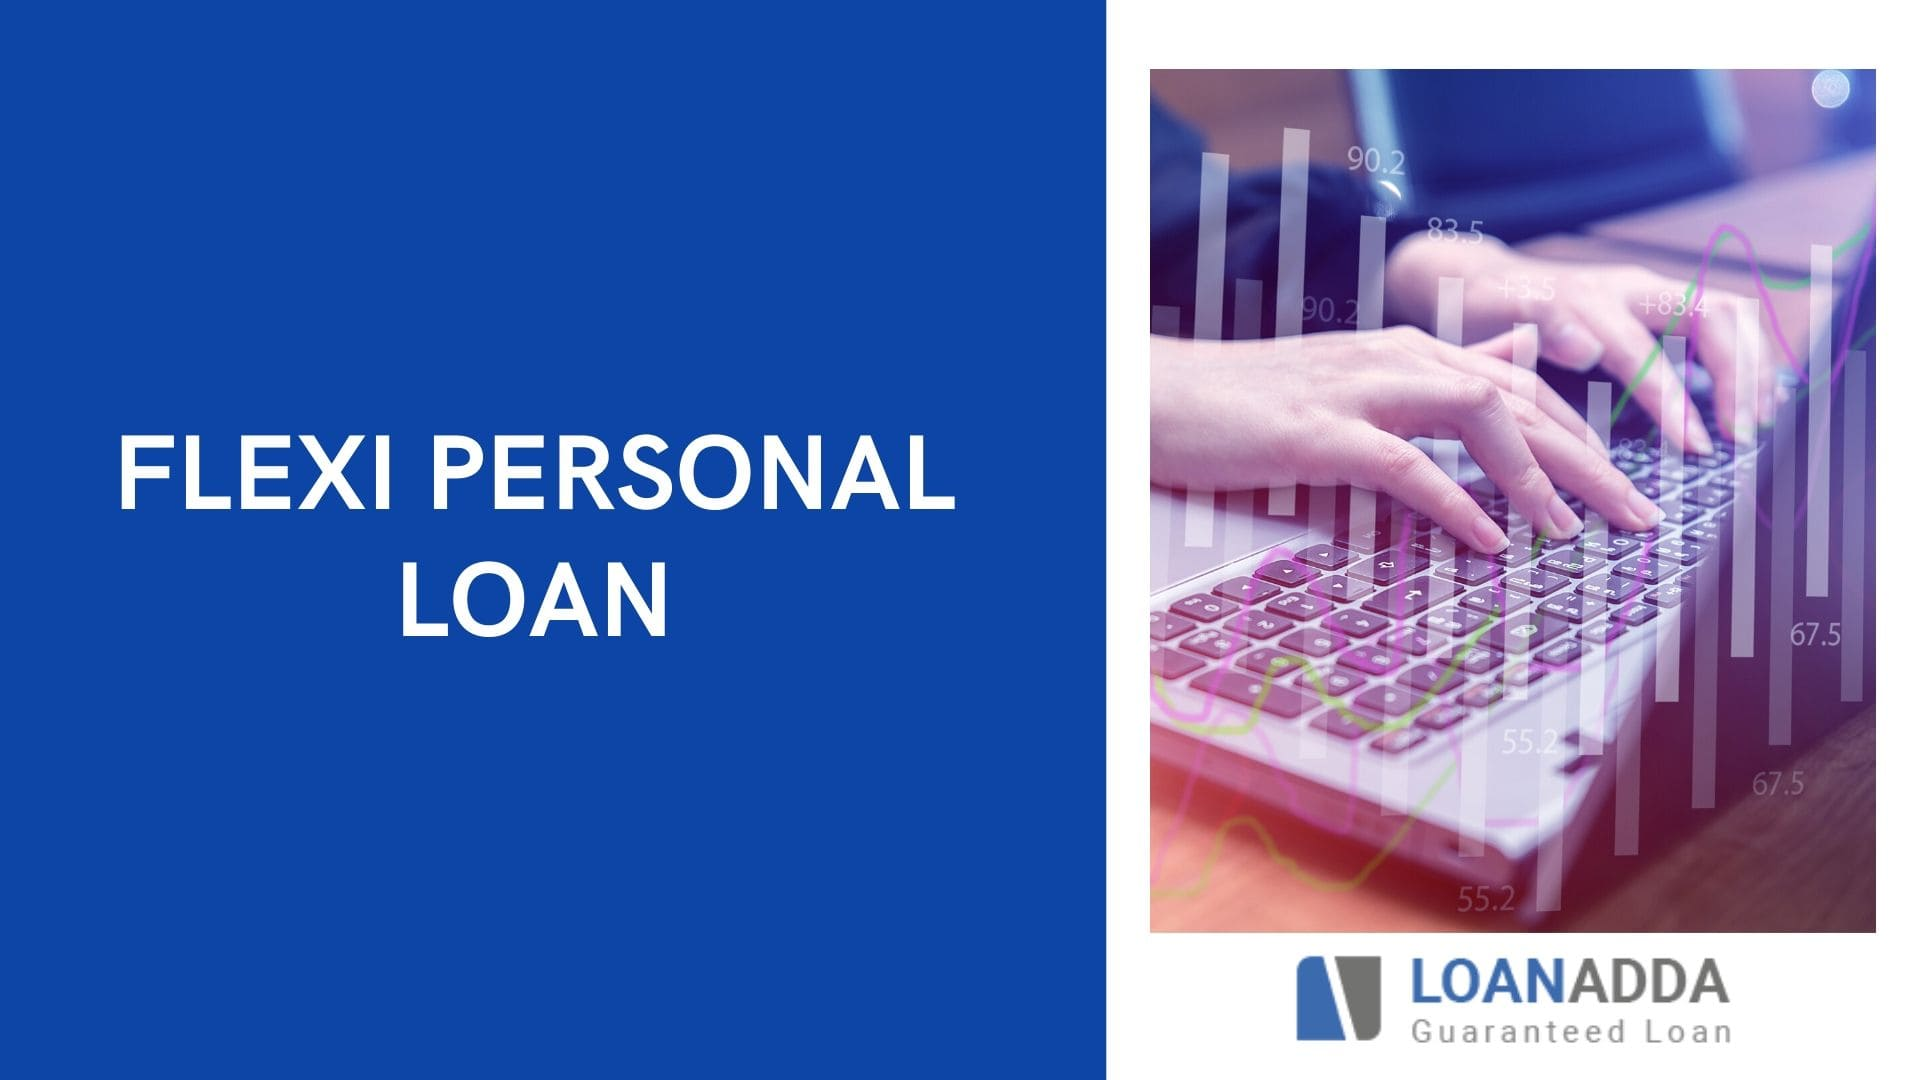 Flexi Personal Loan - Process, Eligibility, Benefits, EMI